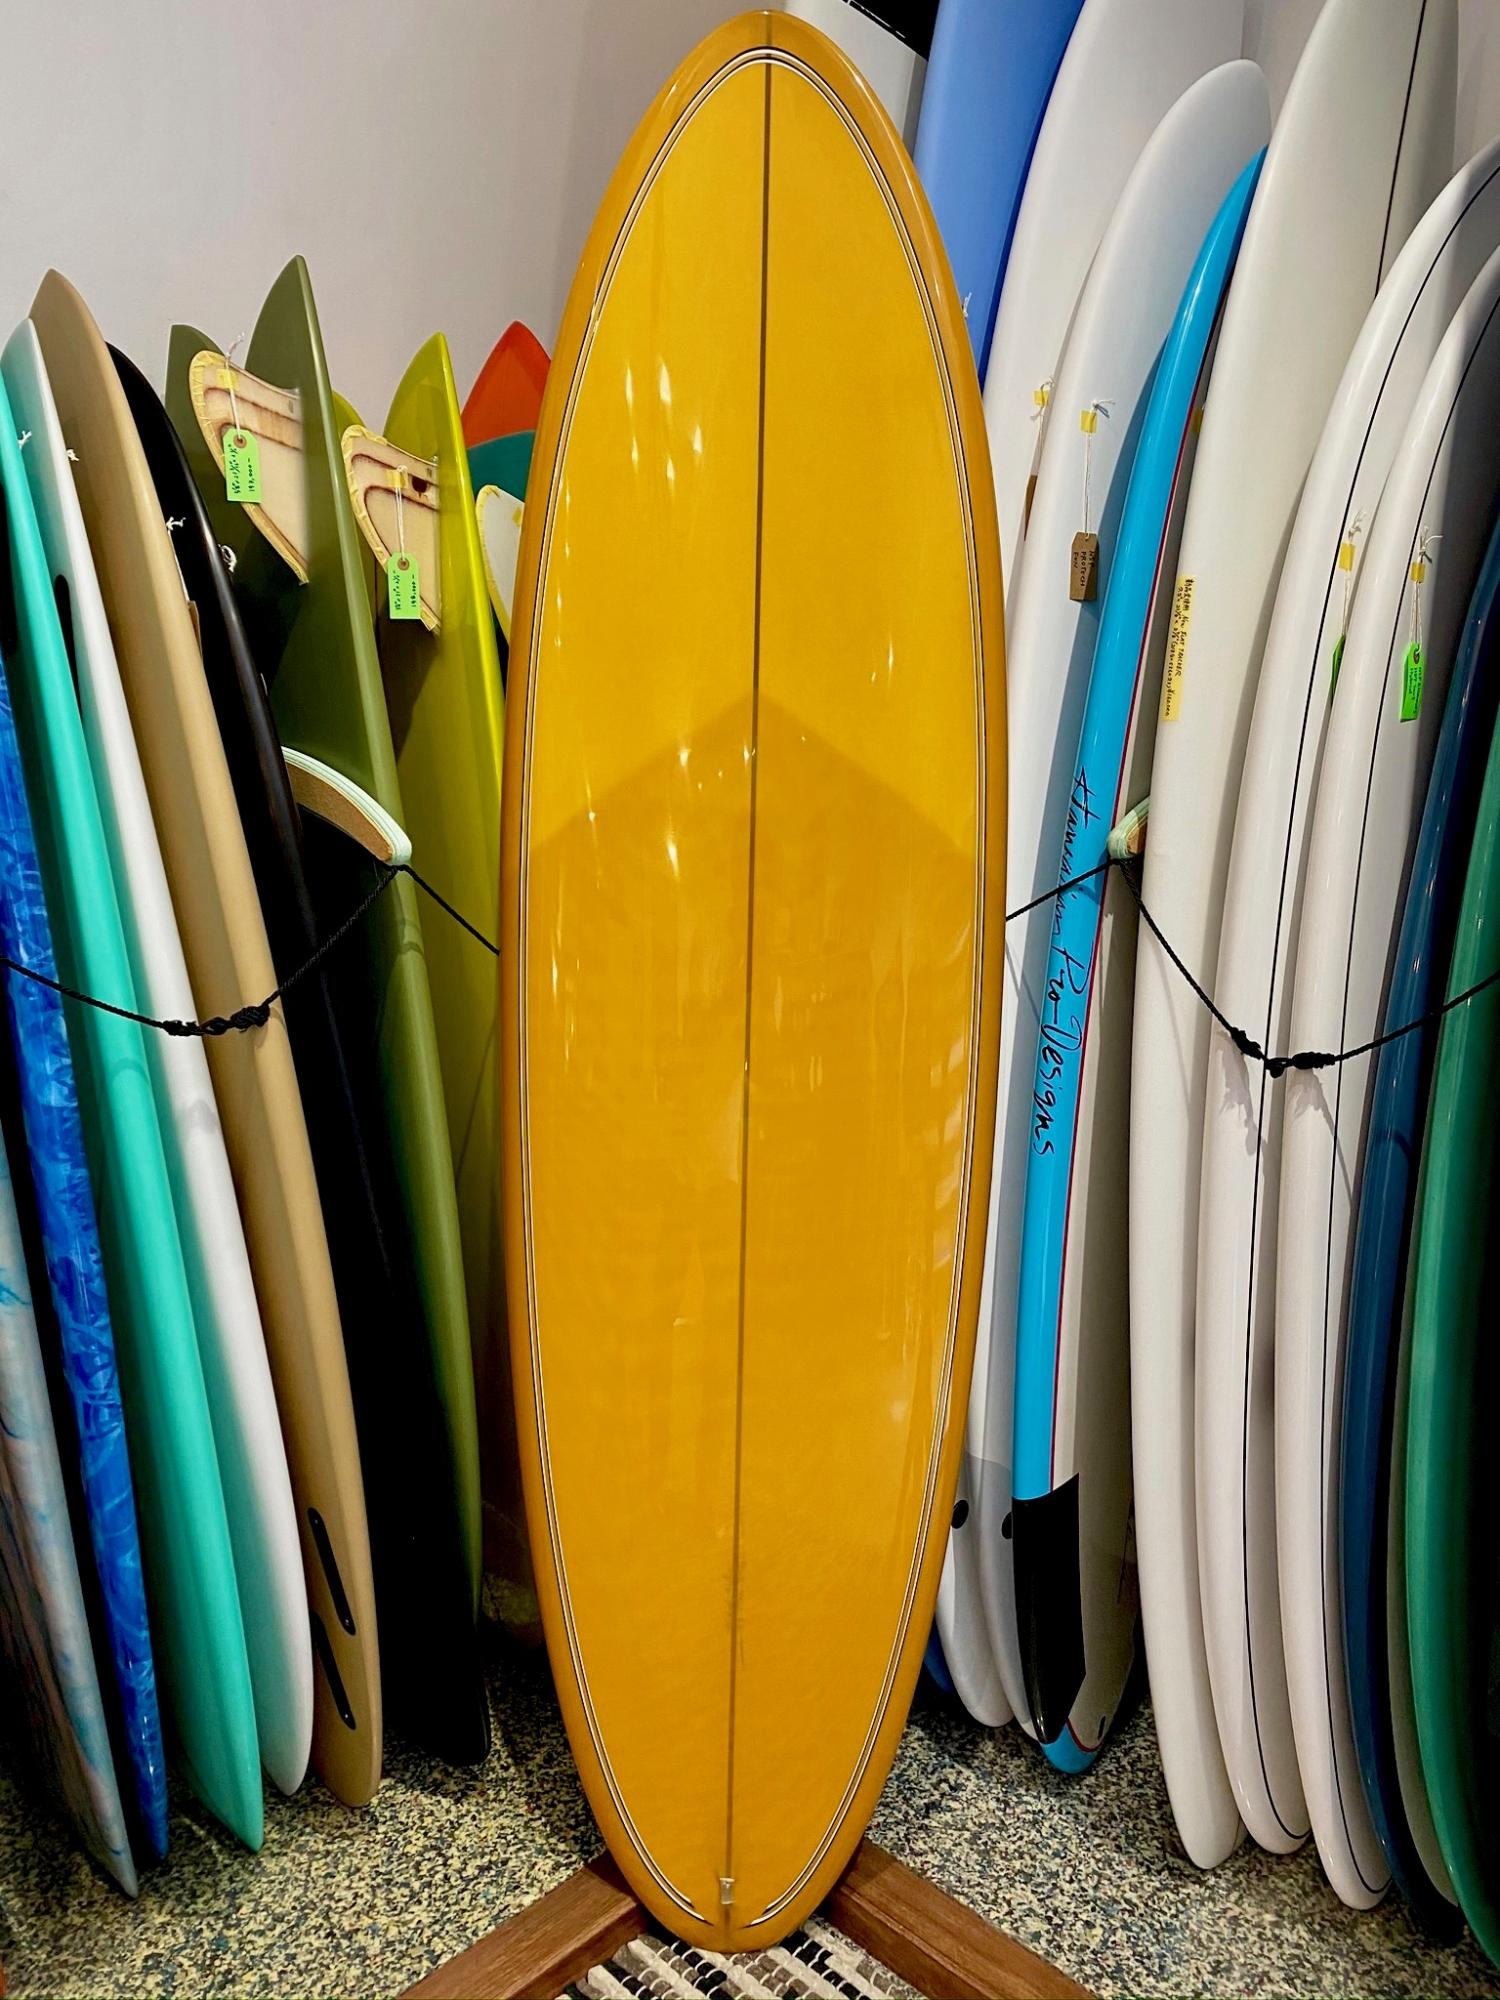 6.8 Frye Egg Michael Miller Surfboards